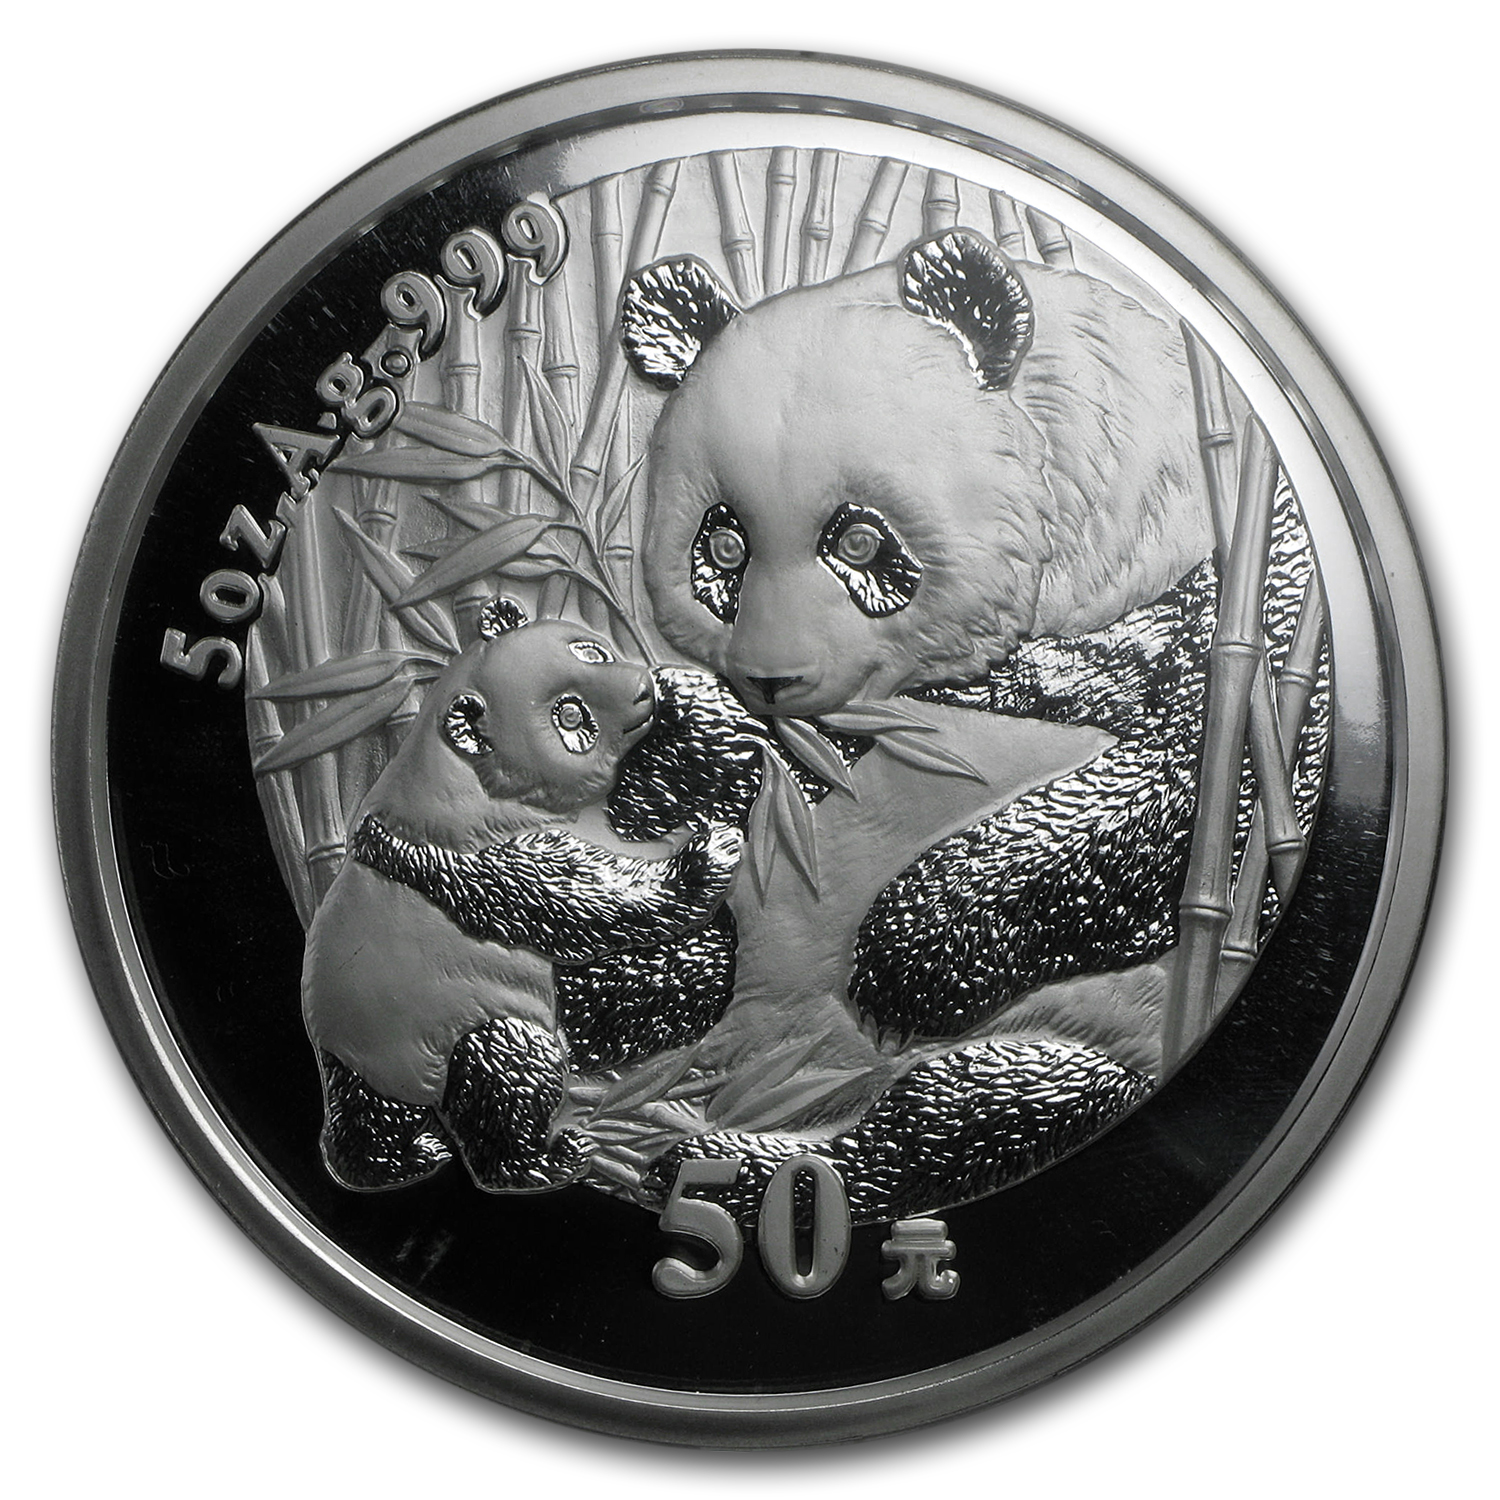 2005 China 5 oz Silver Panda Proof (w/Box & COA)